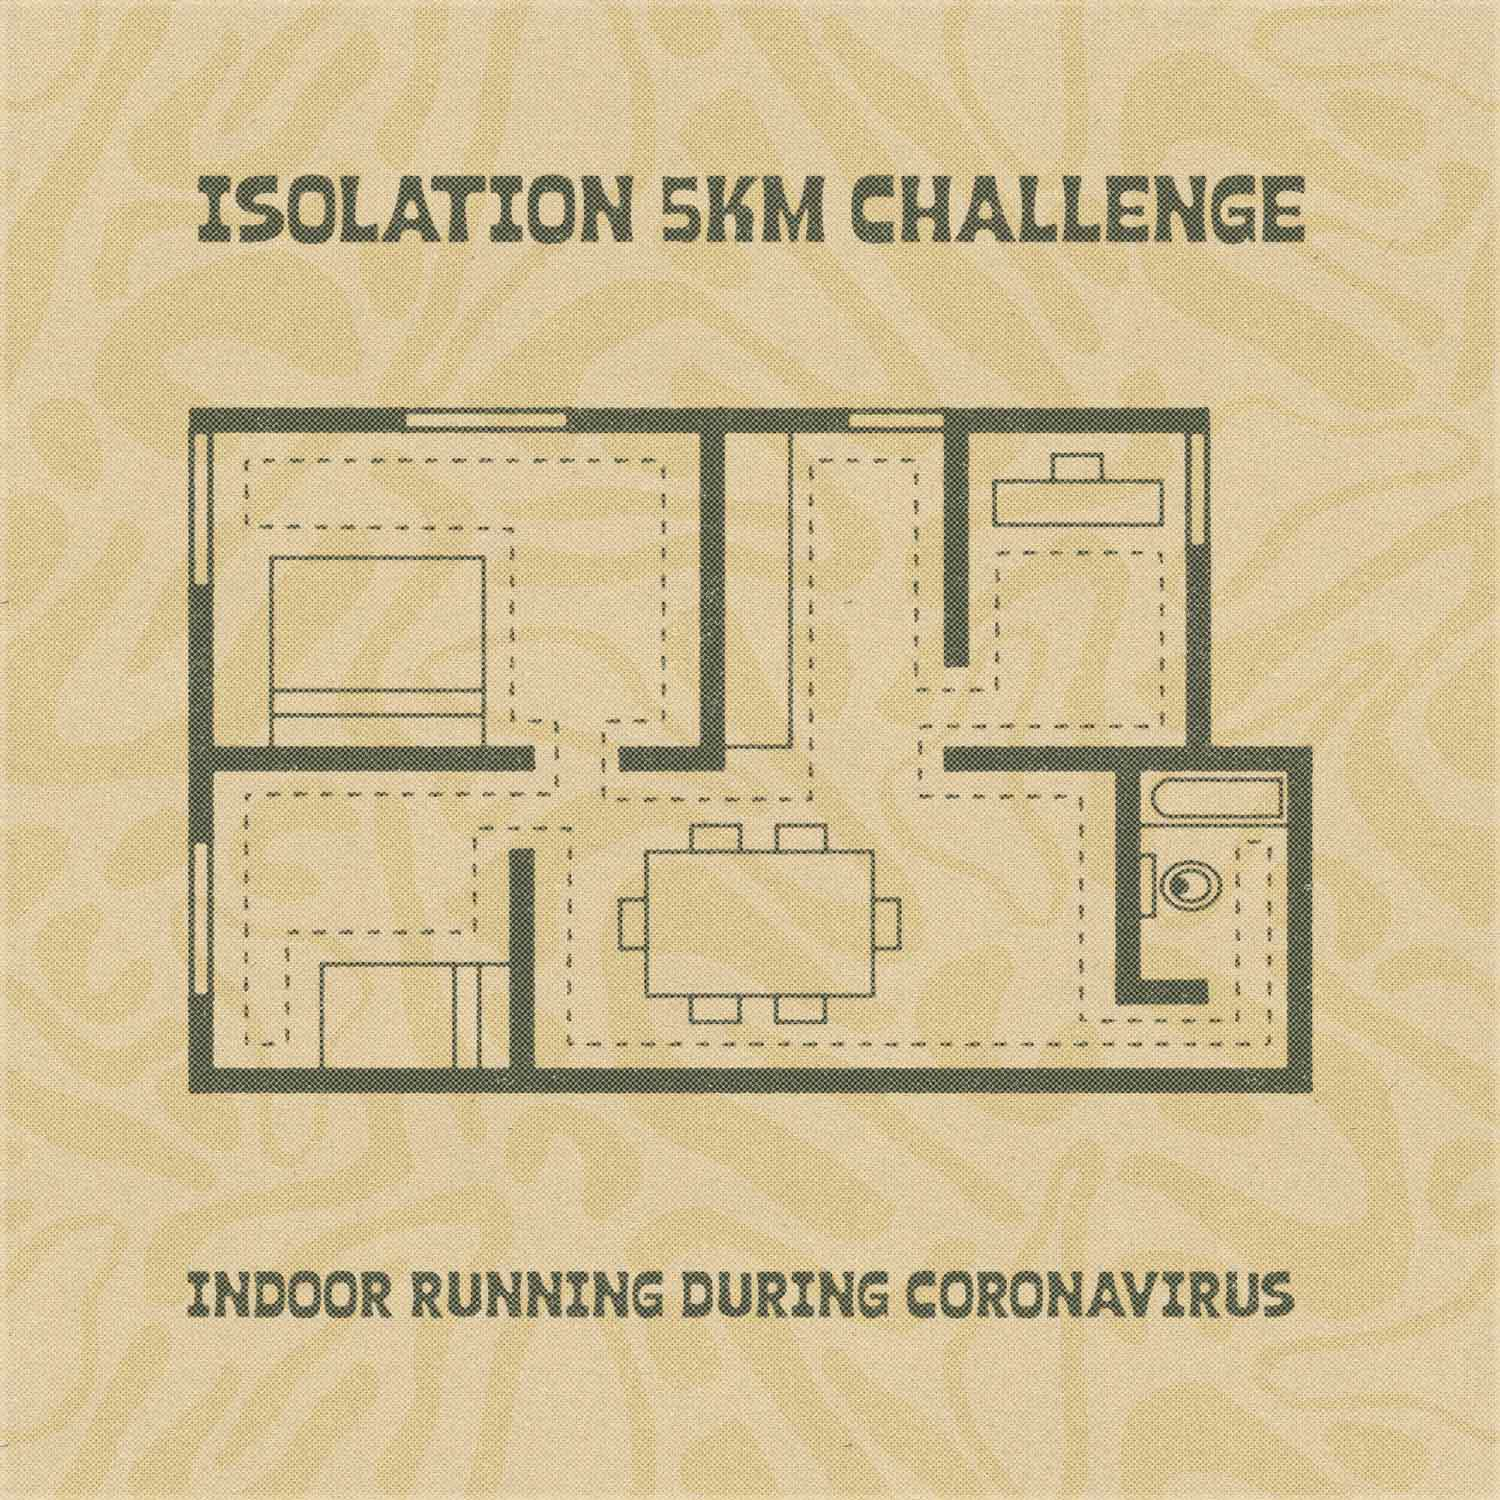 So We Flow... Indoor Running During Coronavirus - Isolation 5km Challenge